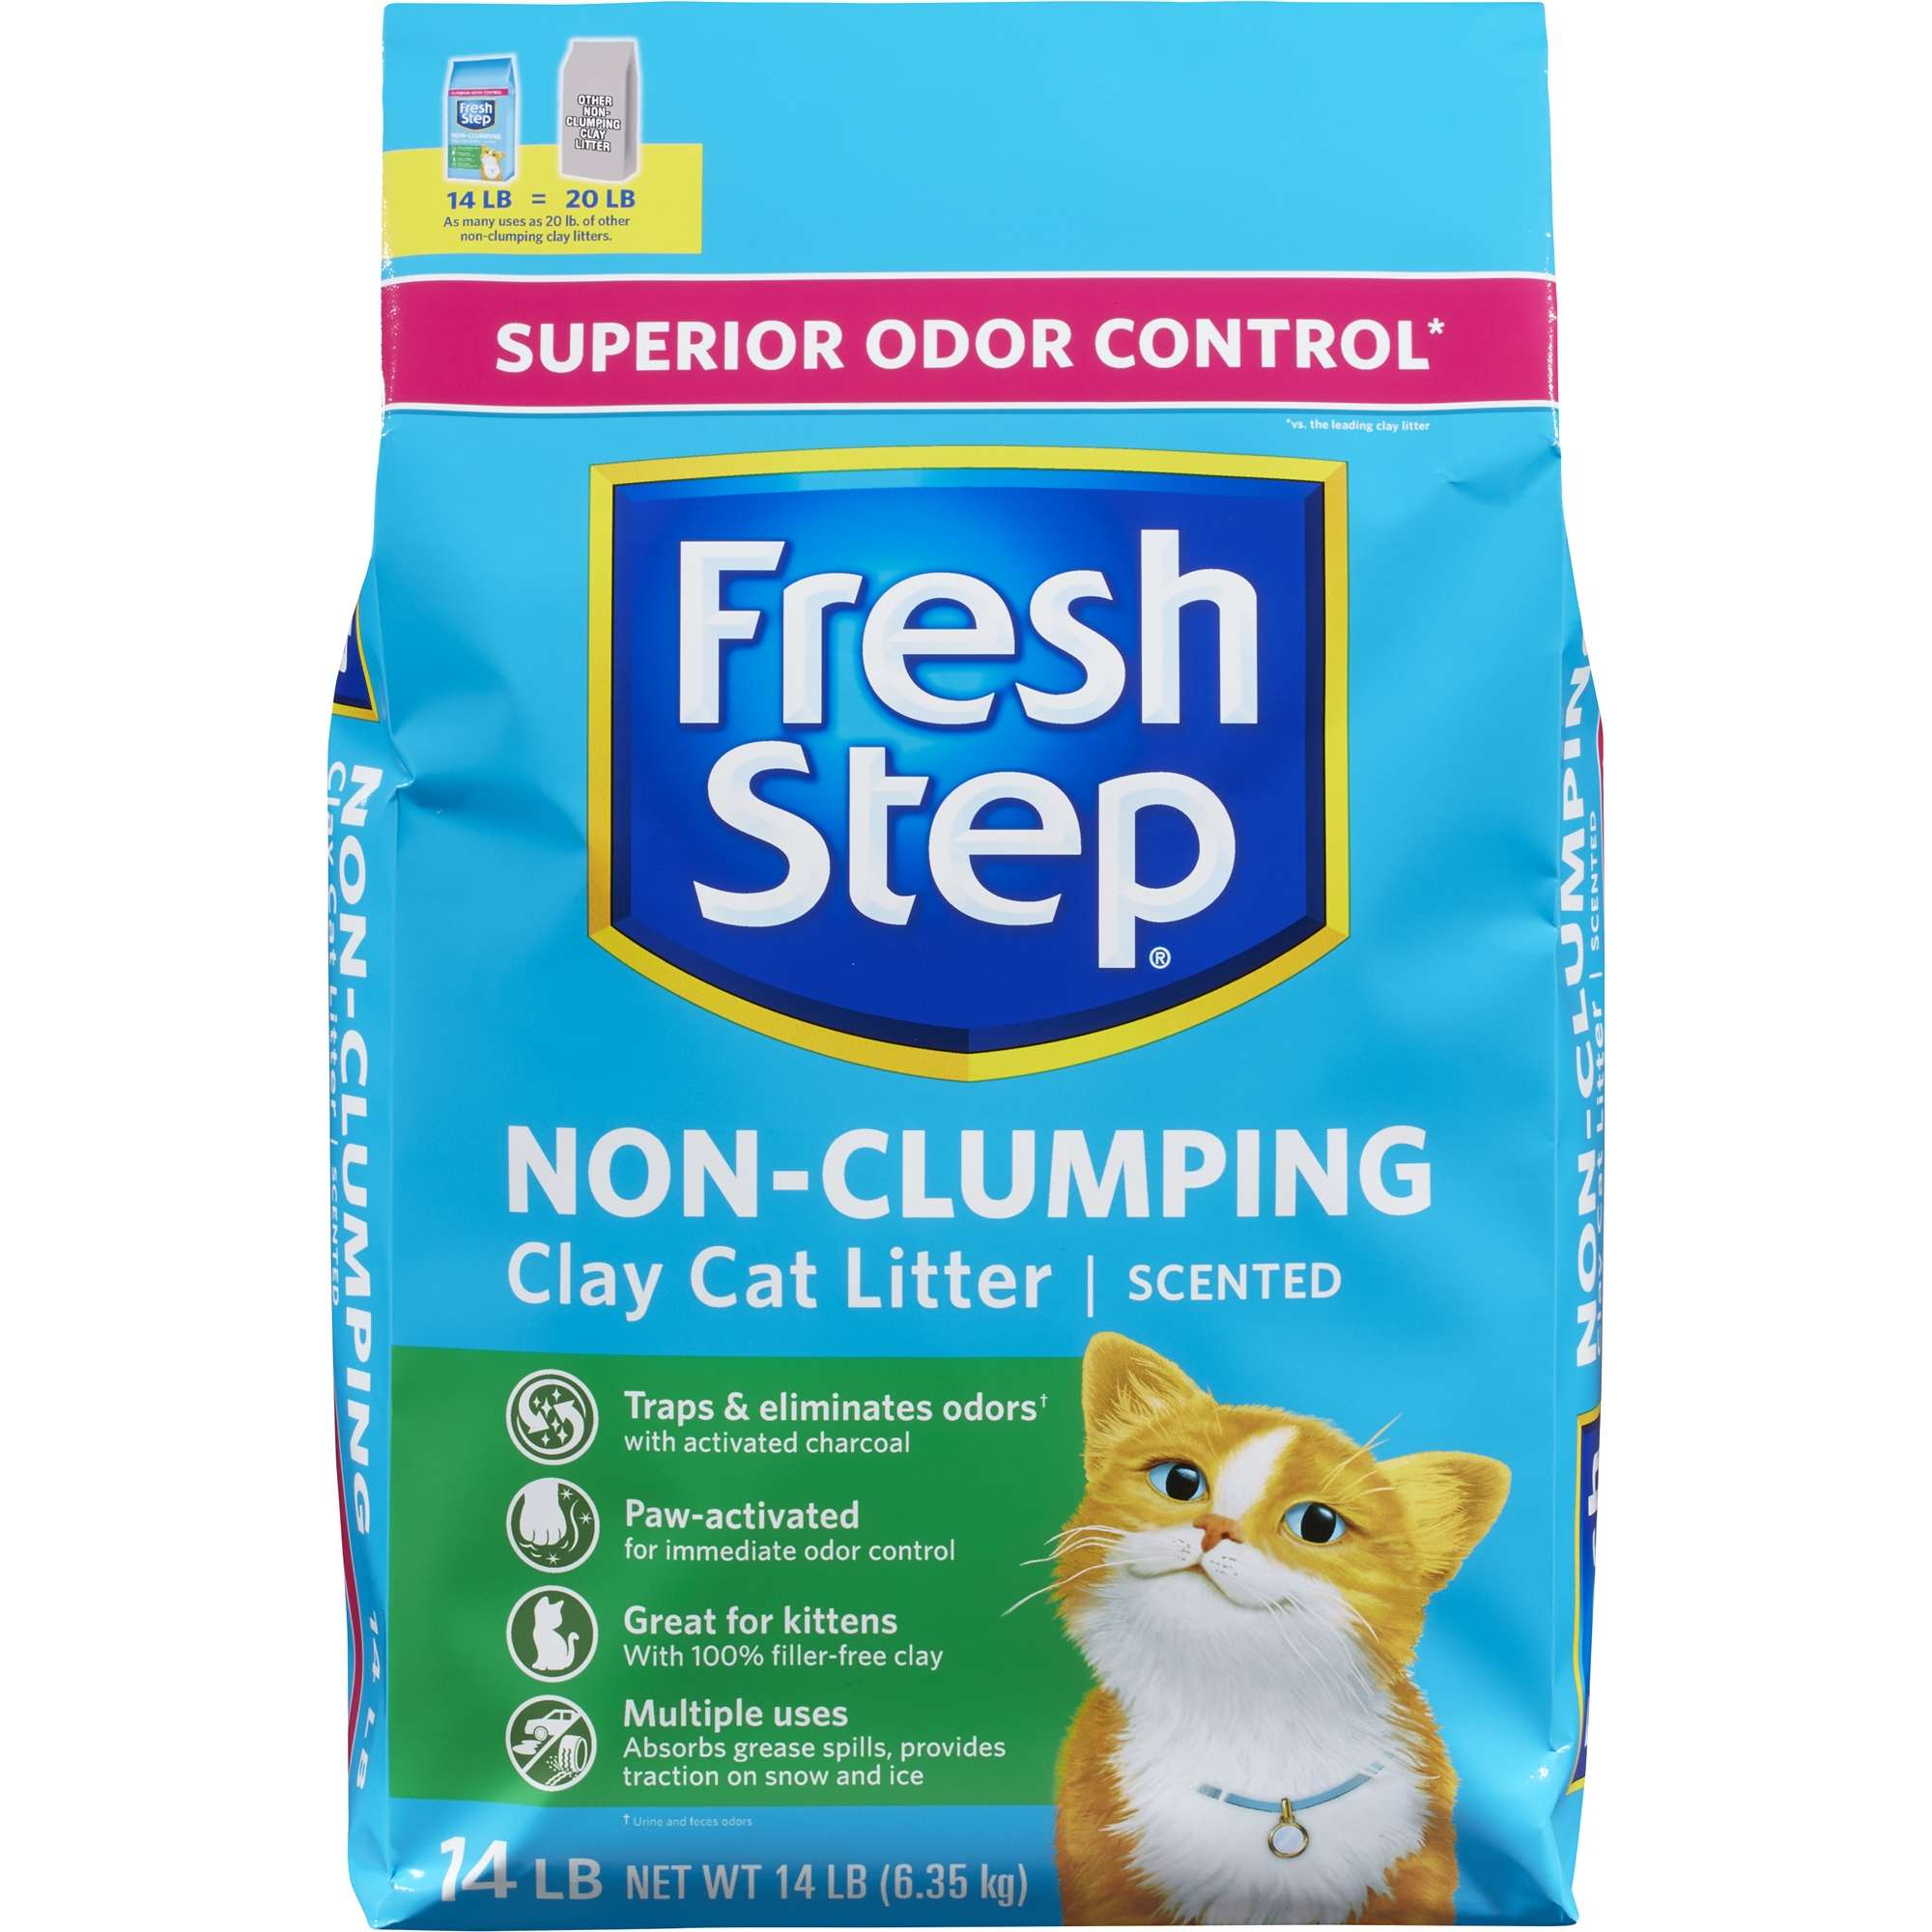 Fresh Step Scented Non-Clumping Clay Cat Litter, 14 Lb.